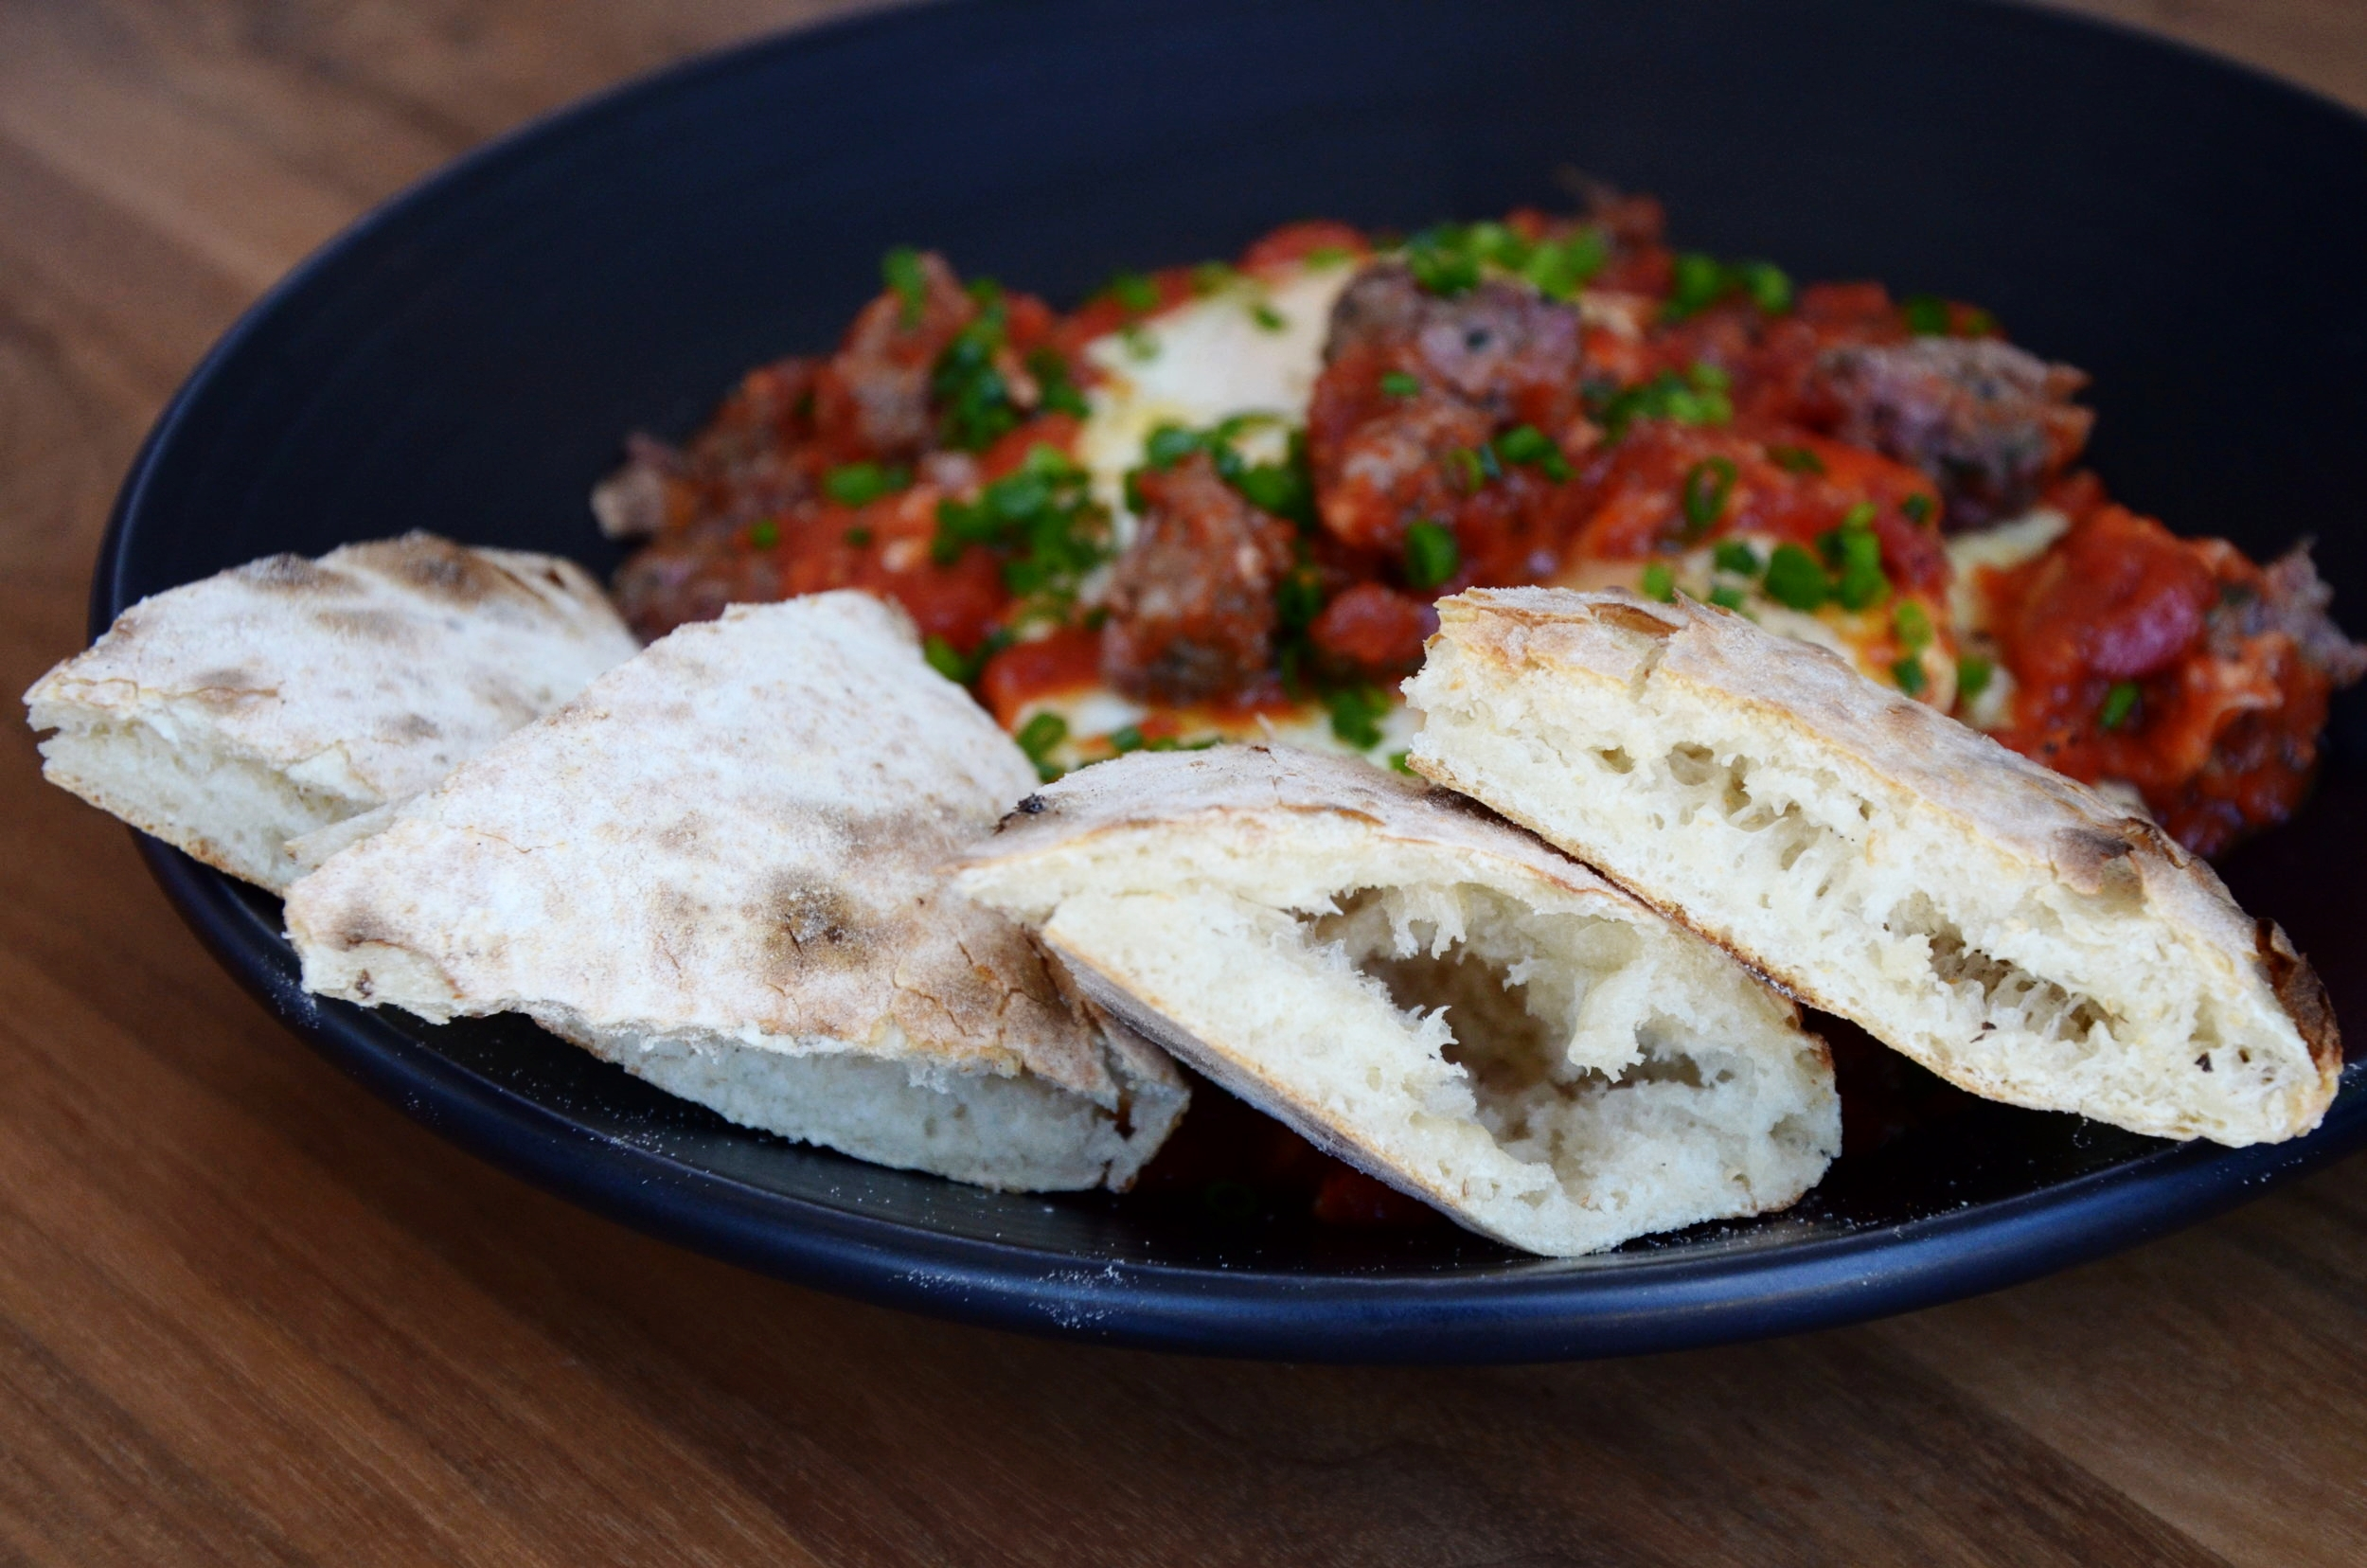 Eggs in Purgatory - lamb sausage, spicy san marzano tomatoes, rosemary polenta and house-made pita bread.